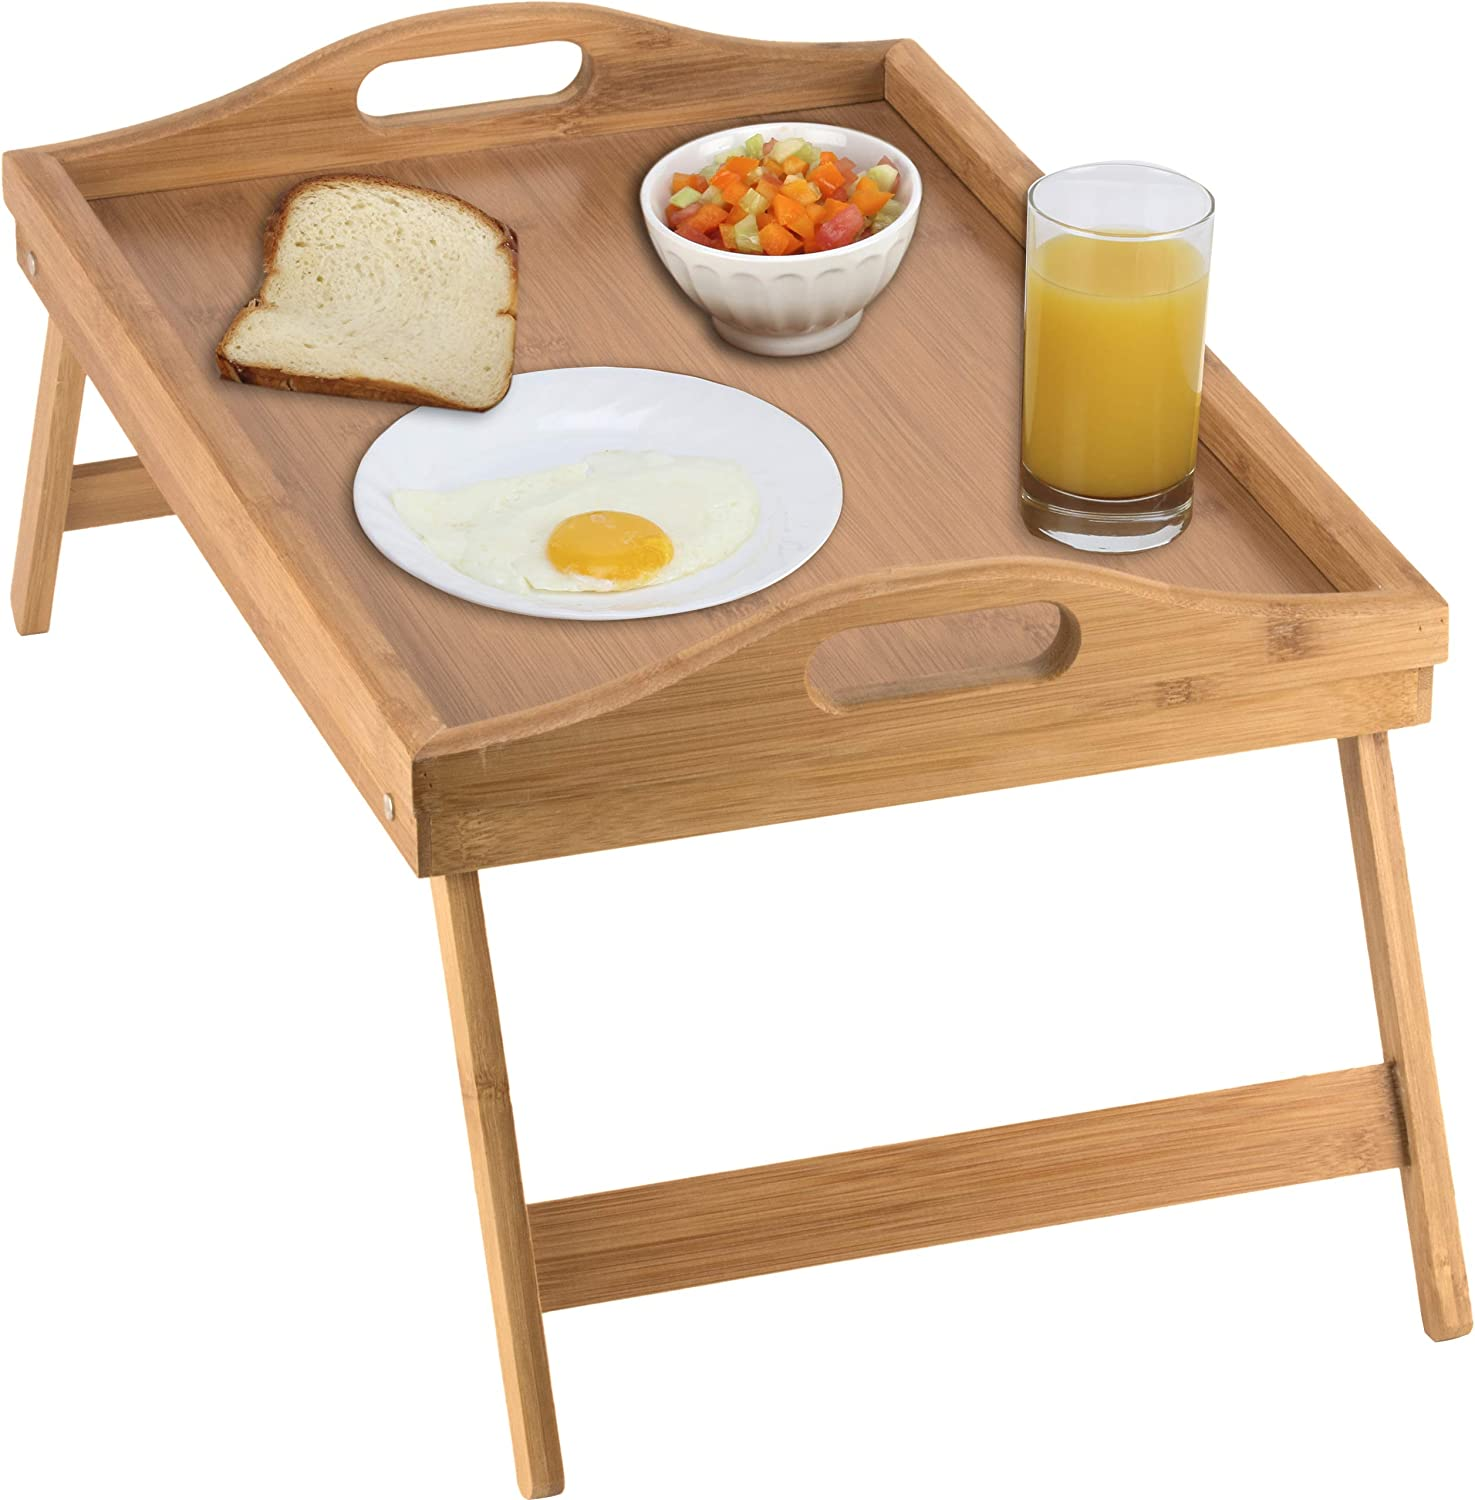 <strong>9. Home-it Bed Tray table</strong>